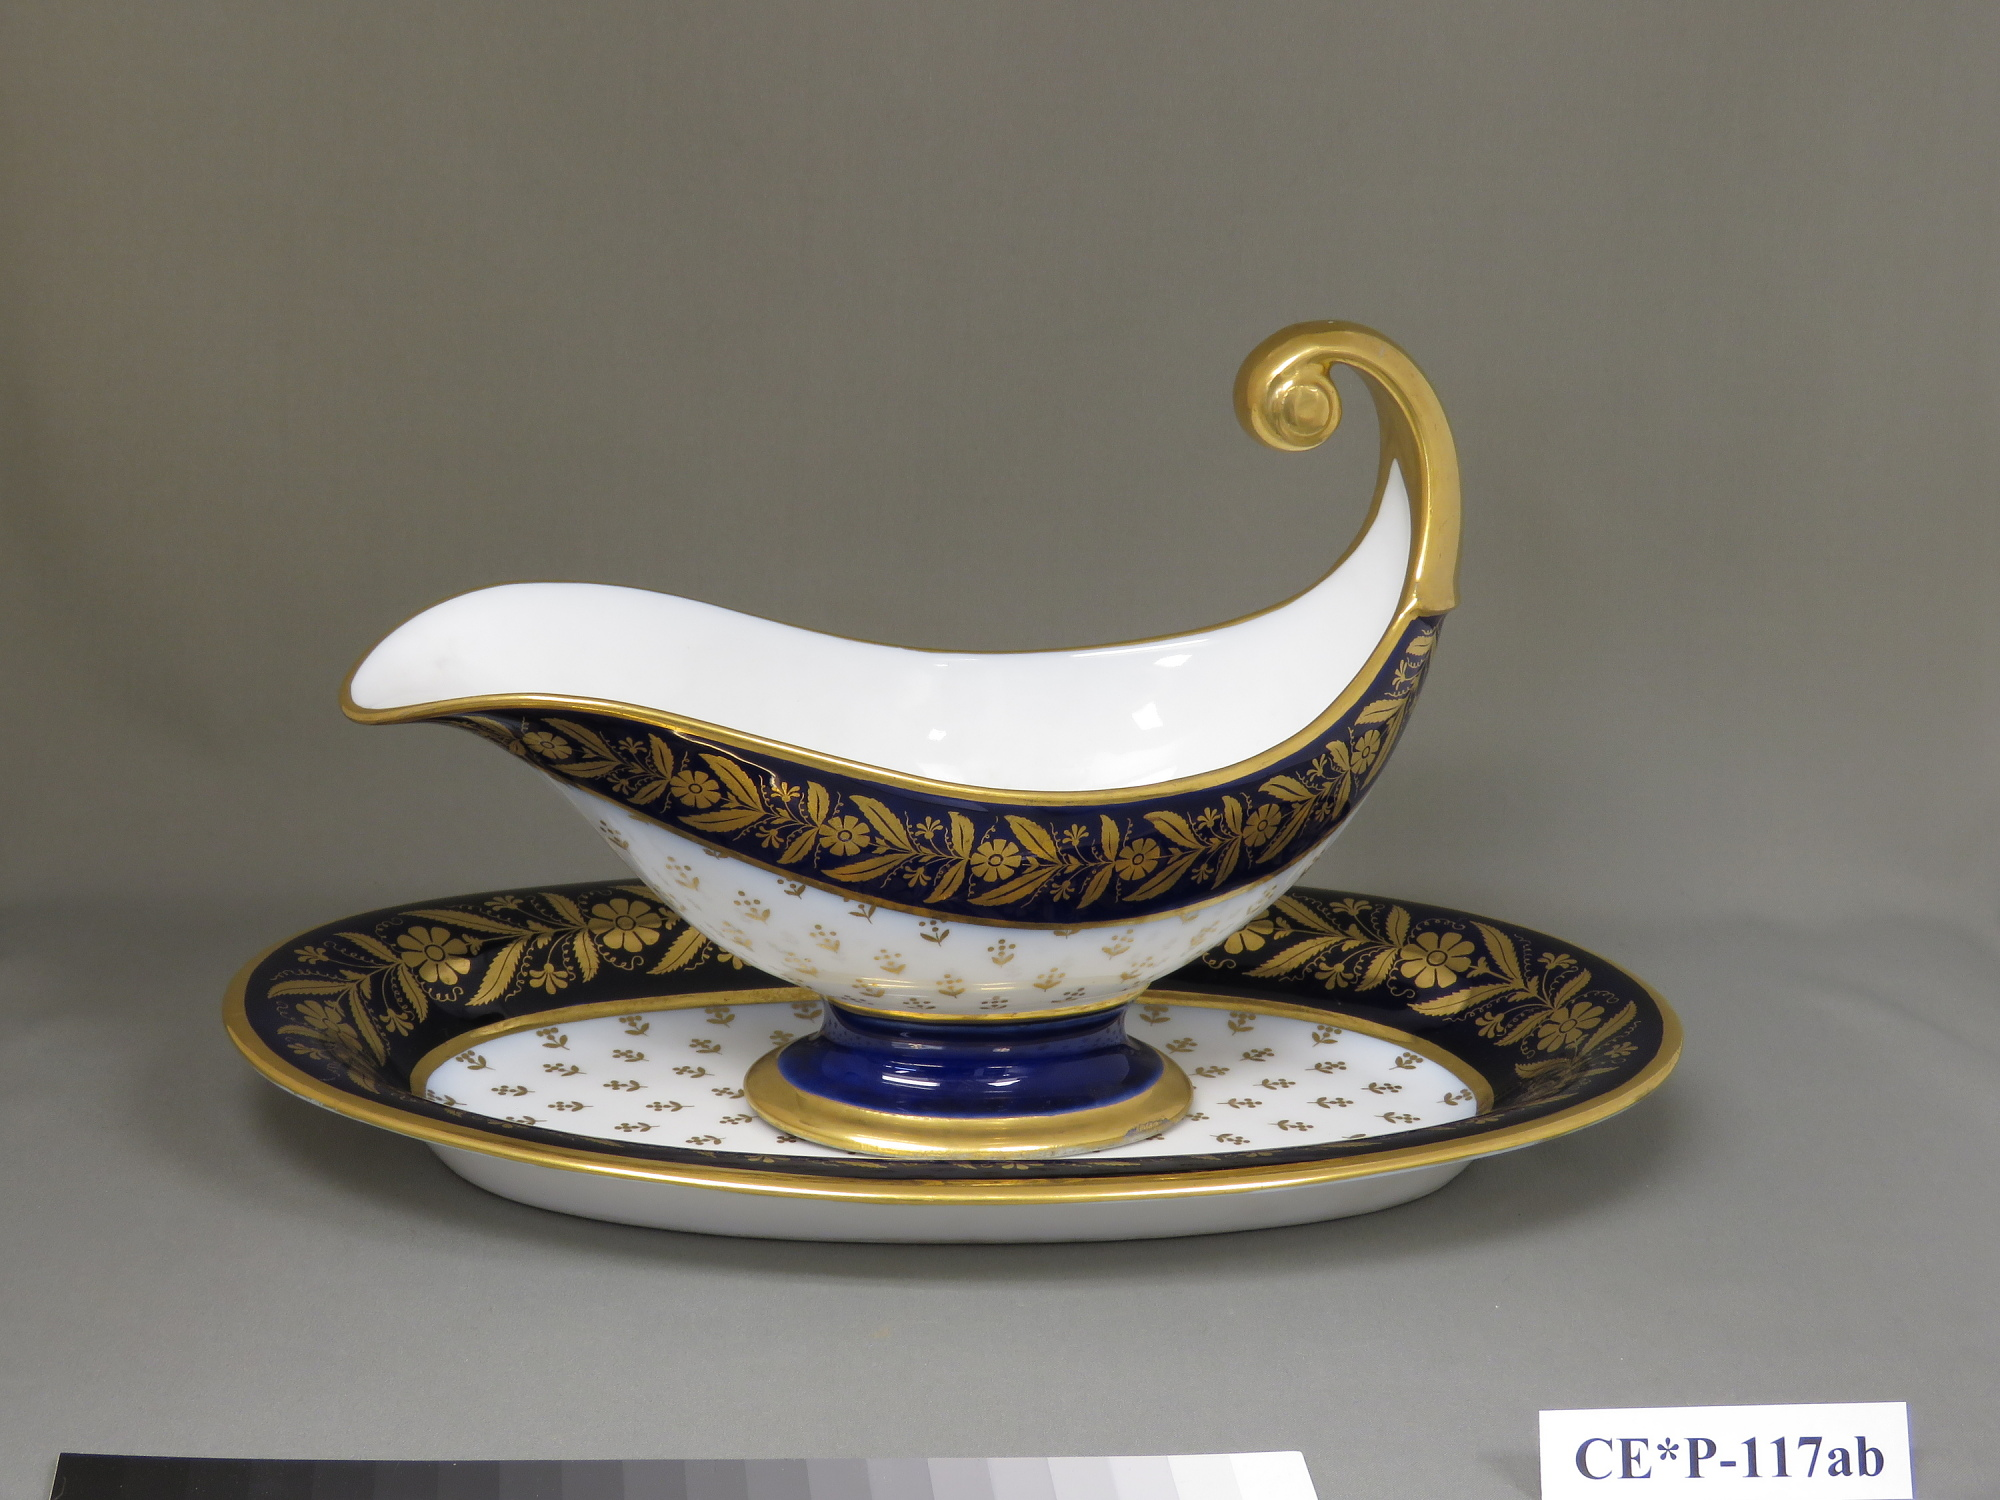 Sèvres porcelain sauceboat and stand